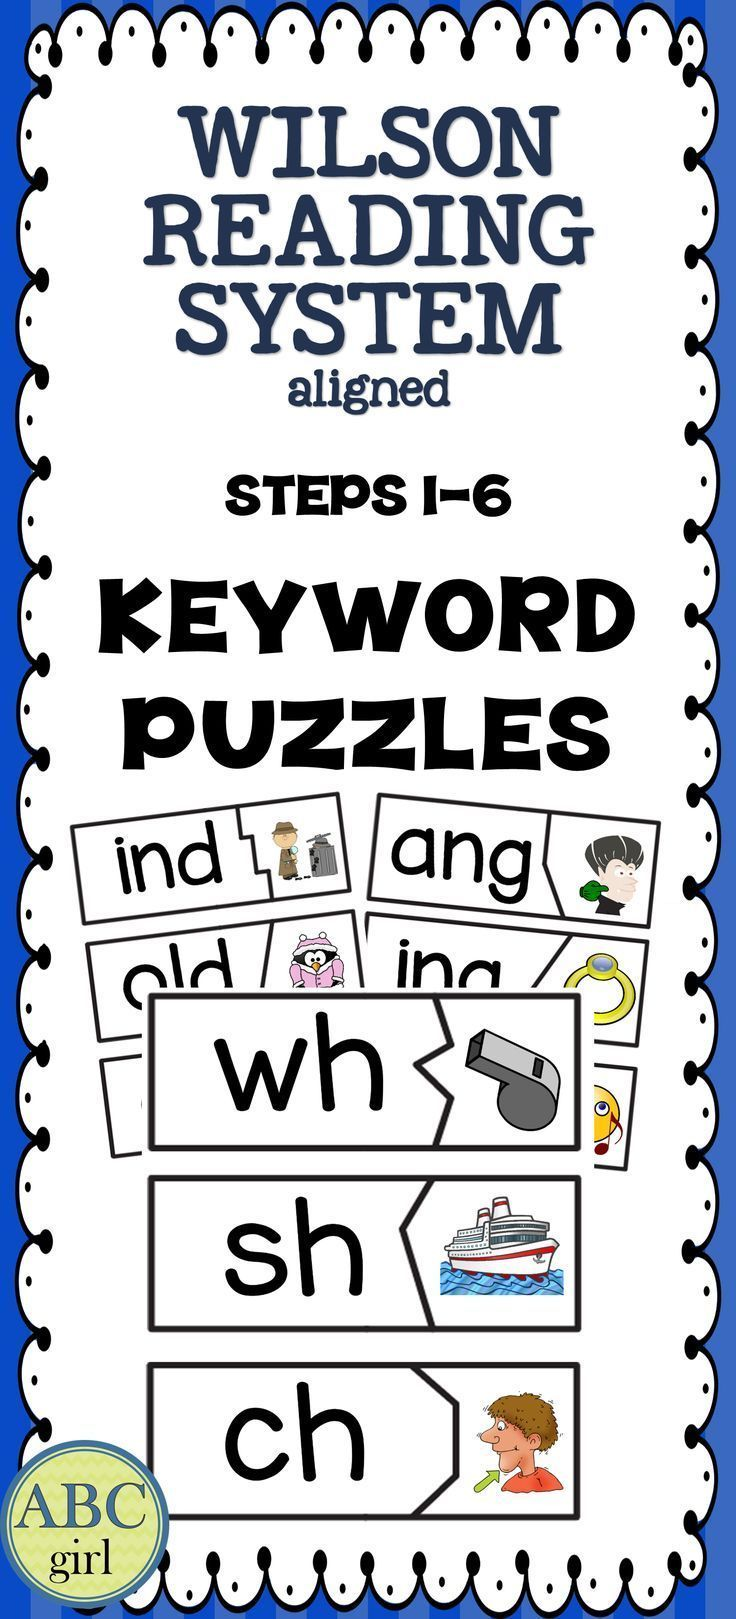 """Wilson Reading System®️️️️️️ Keyword Puzzles include all of the keywords for steps 1-6. Print, cut, laminate and play! There are three versions of A-Z: uppercase & lowercase, uppercase only, and lowercase only. Each puzzle is 3"""" by 8"""". Color and black and white versions are included. These puzzles are a perfect tool to reinforce the letters, keywords, and sounds that are being taught during your Wilson®️️️️️️ lessons!"""